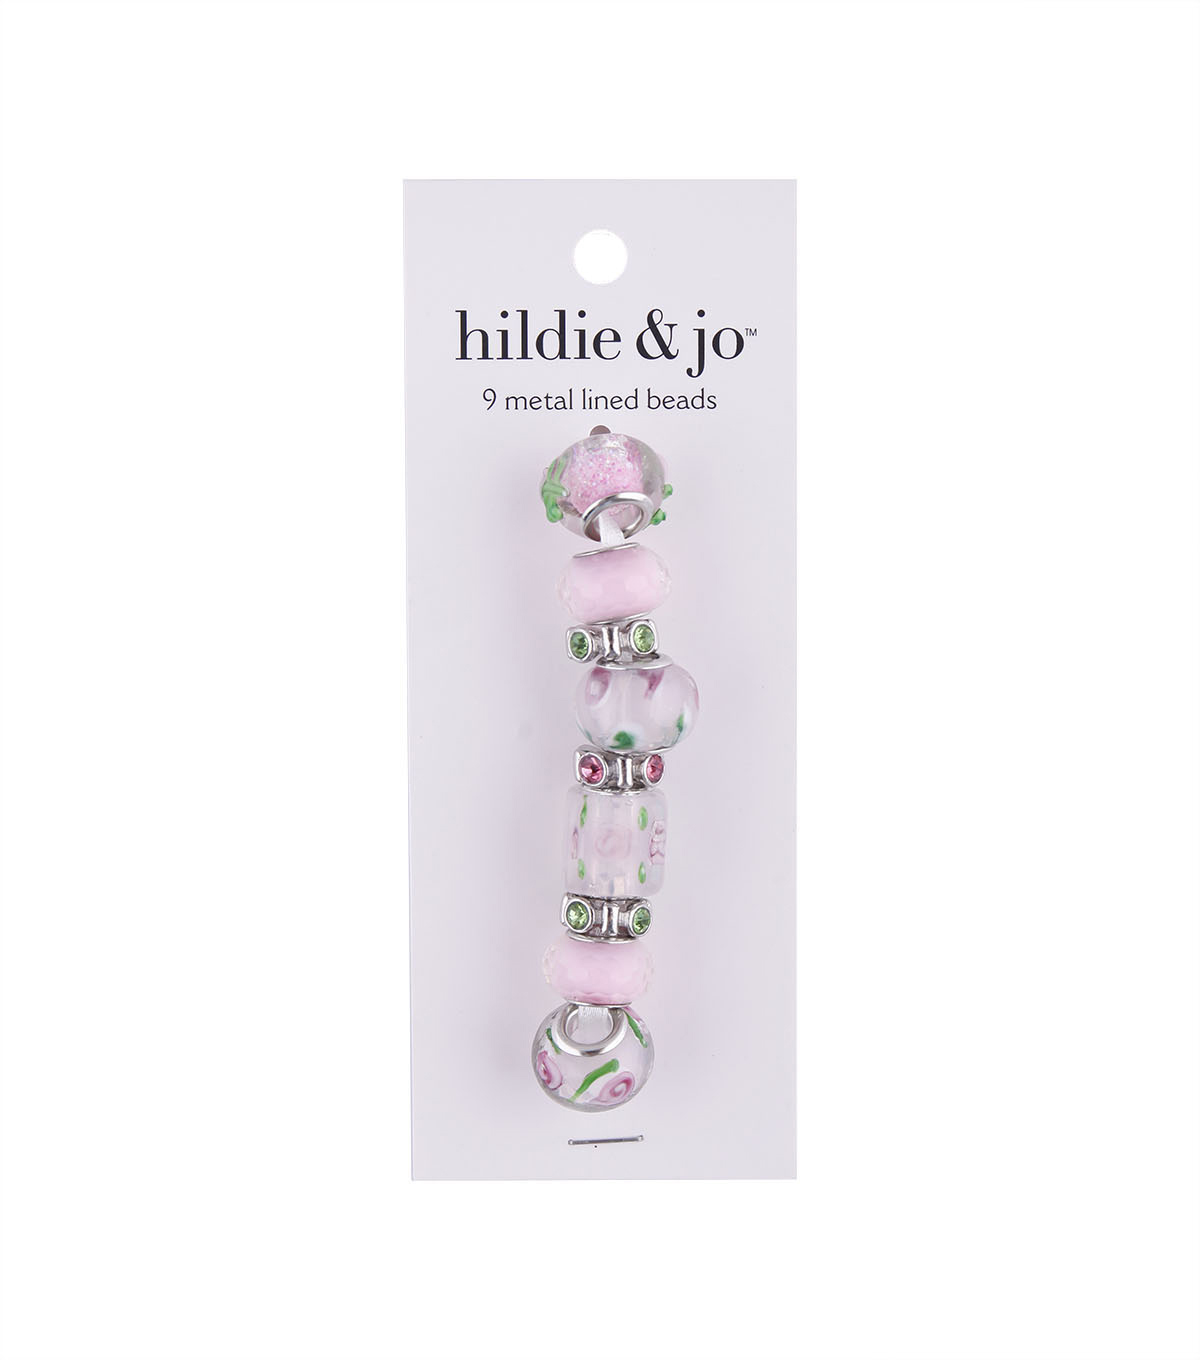 hildie & jo™ Mix & Mingle Metal Lined Glass Beads-Light Pink